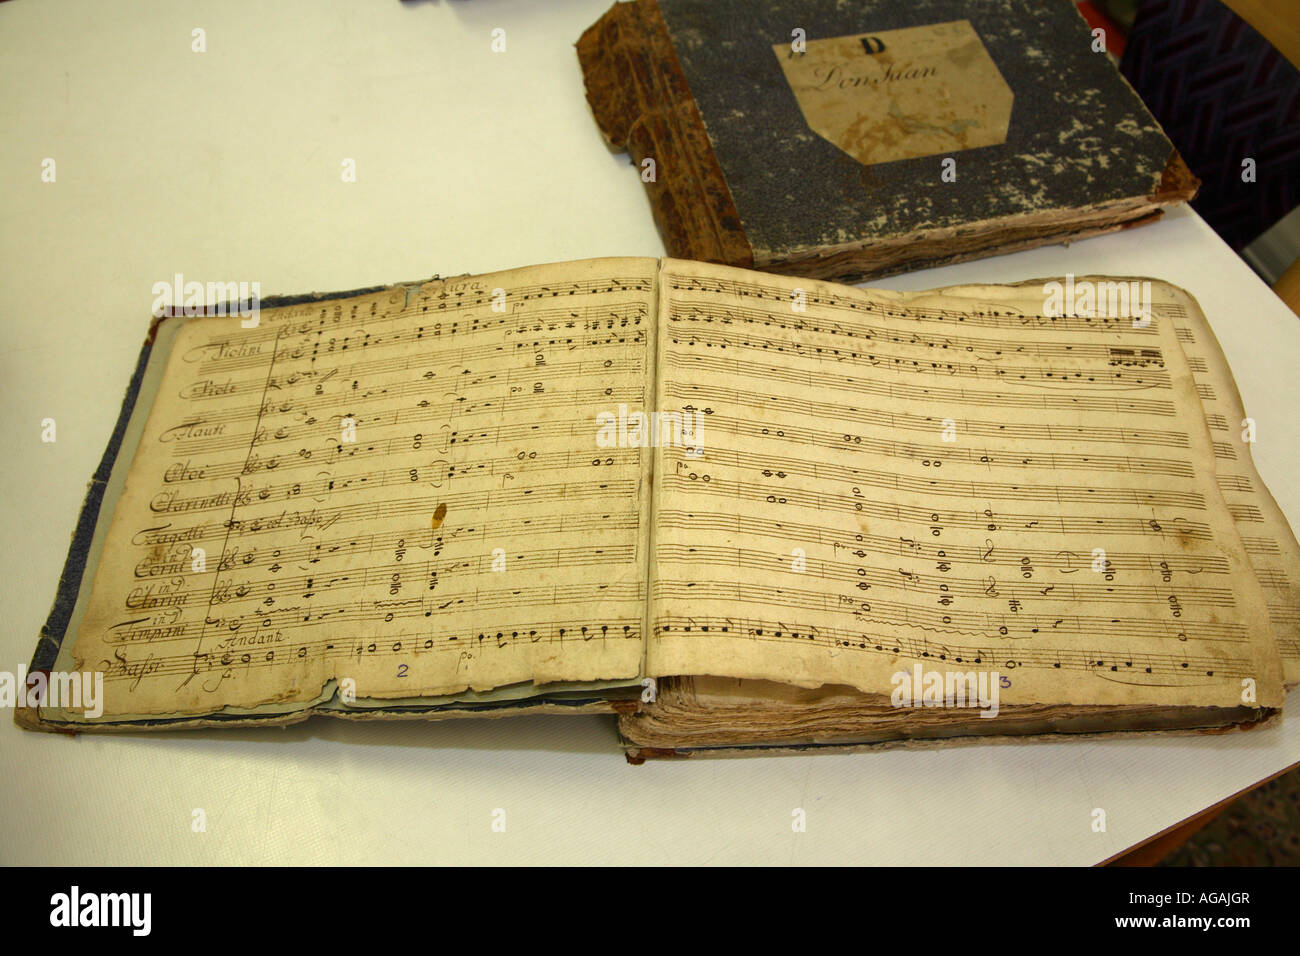 period autograph score of Mozart s opera Don Giovanni Prague conservatory dated 1787 - Stock Image